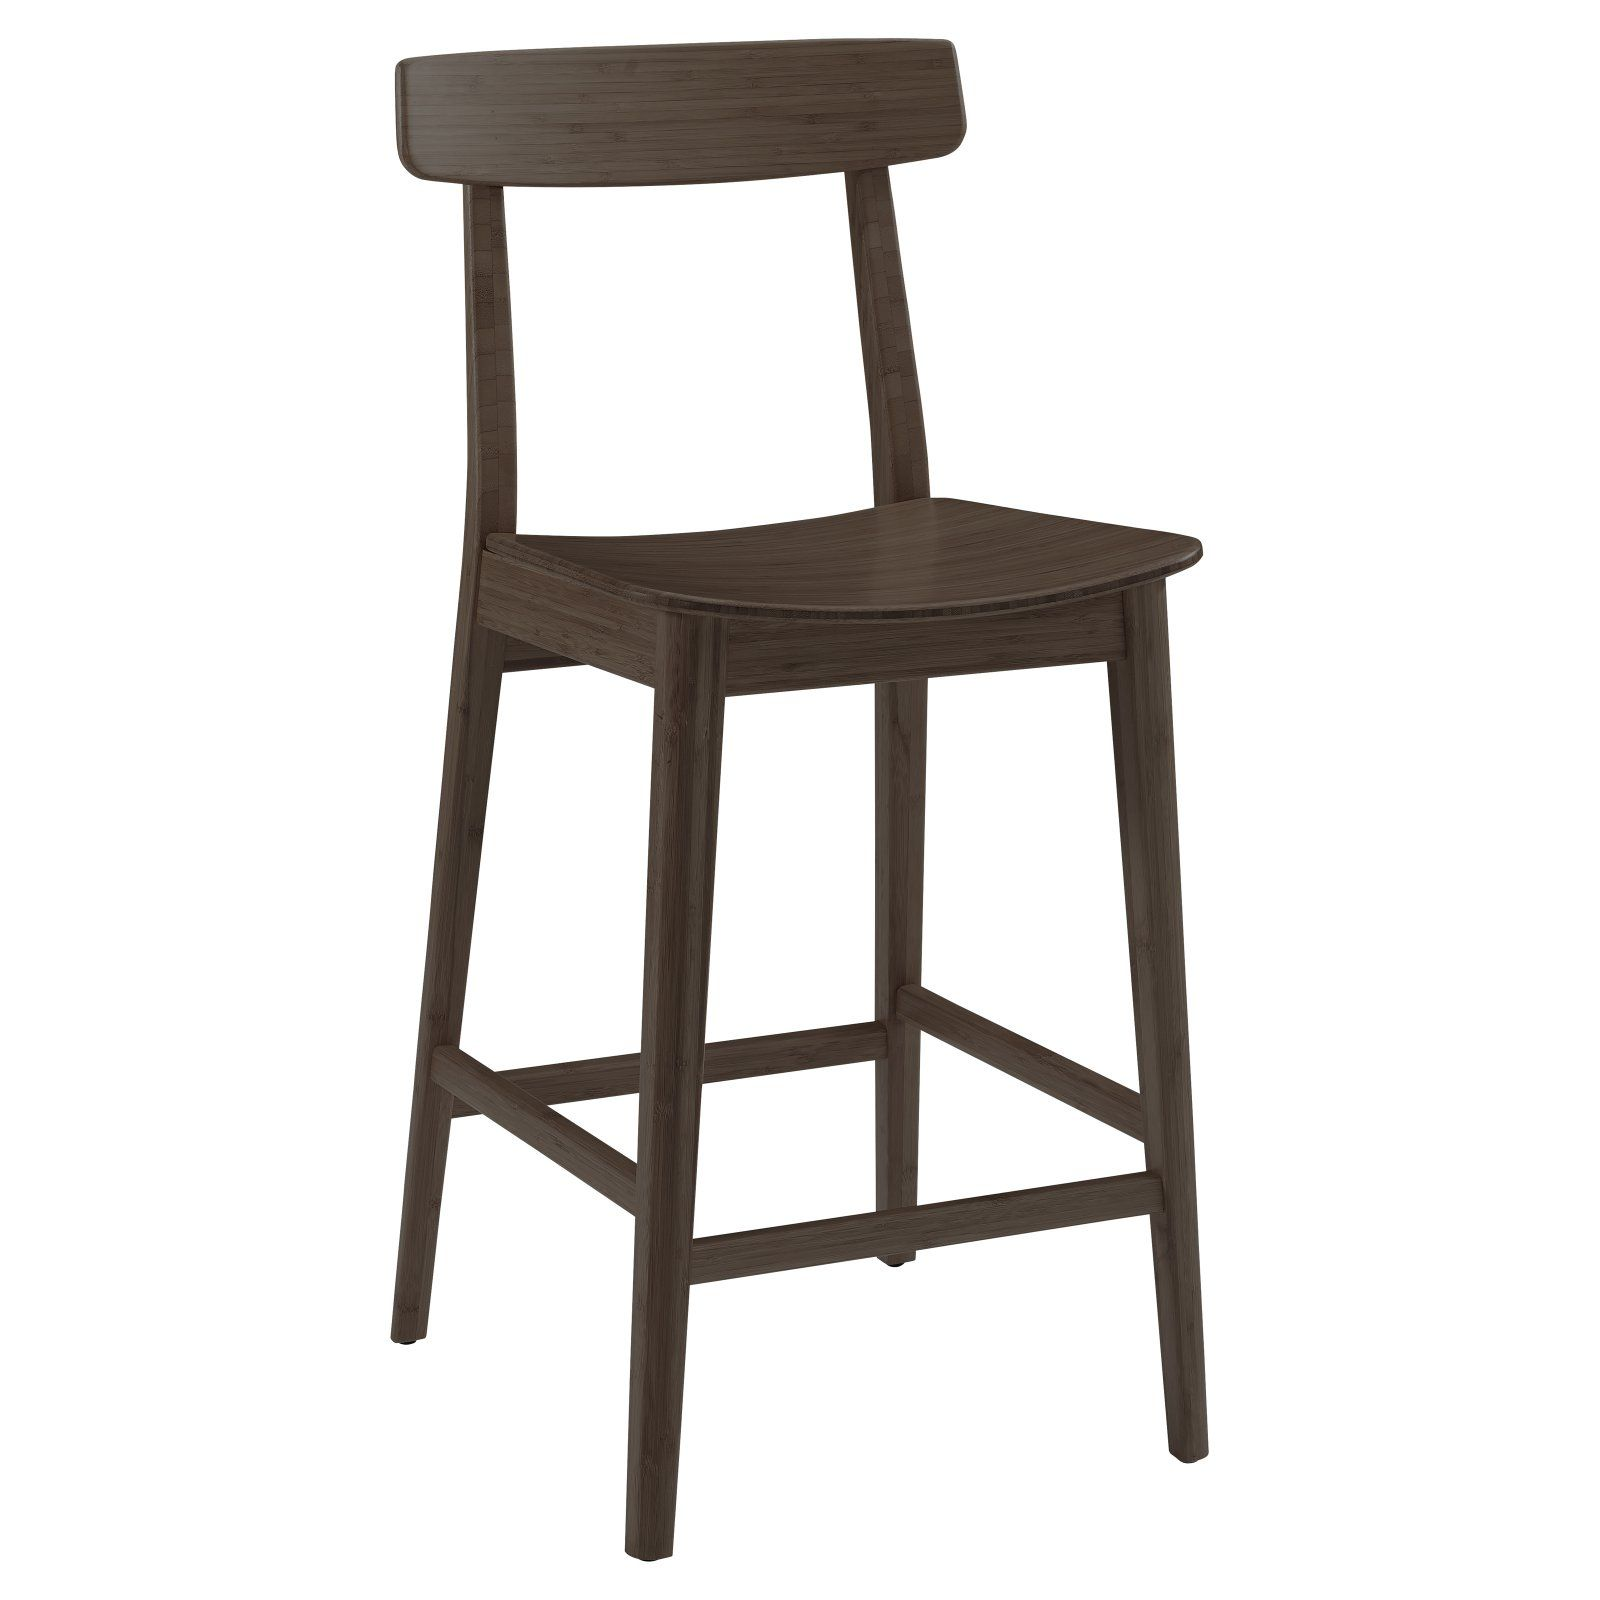 Awesome Greenington Currant Bar Height Stool Black Walnut Products Ocoug Best Dining Table And Chair Ideas Images Ocougorg